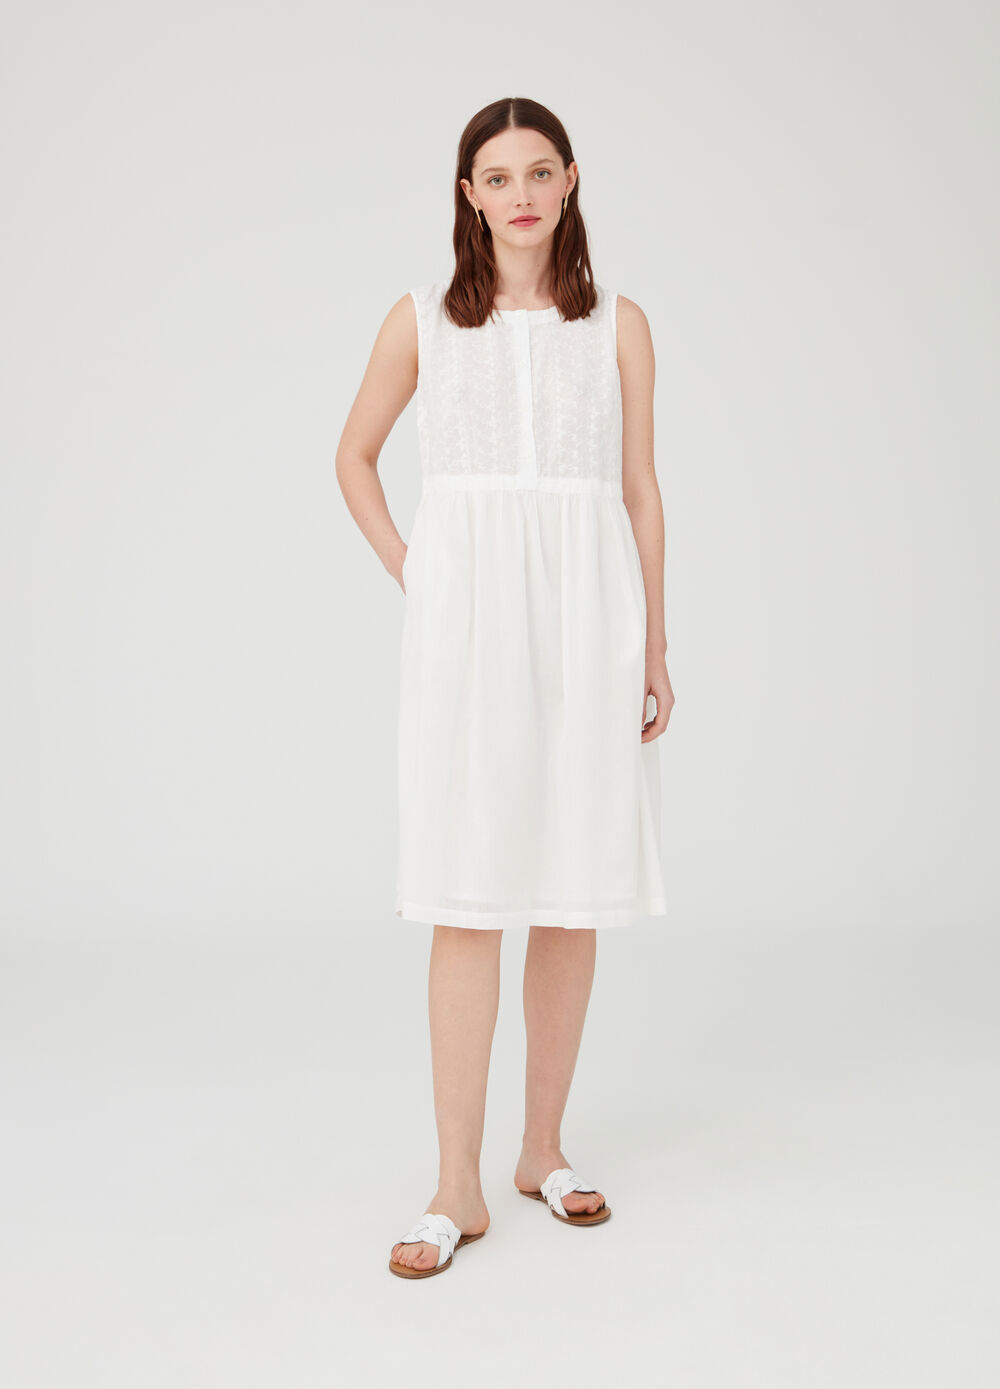 Sleeveless dress with laces and pockets